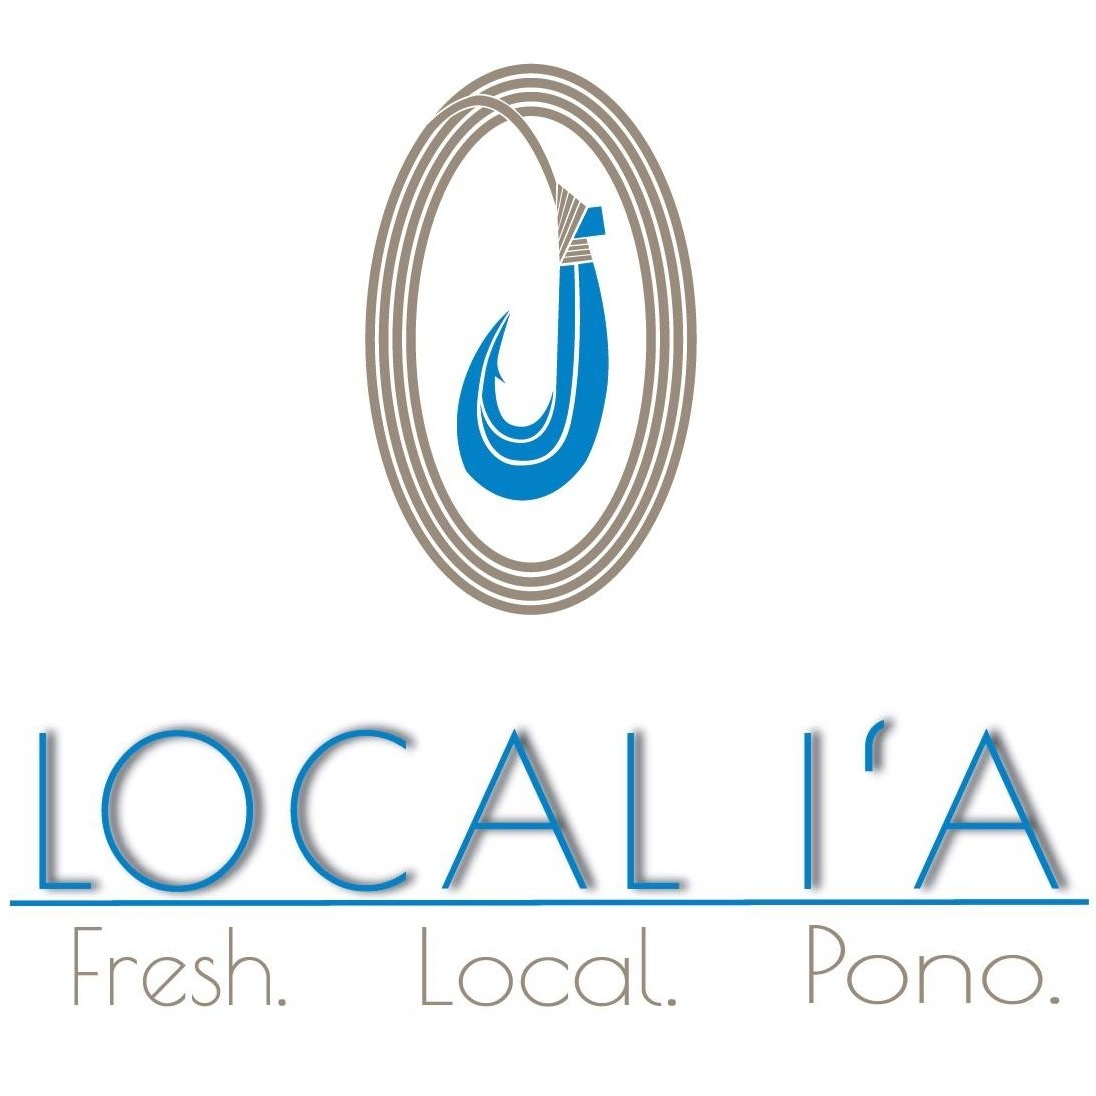 Hawai'i Based Company: Local I'a